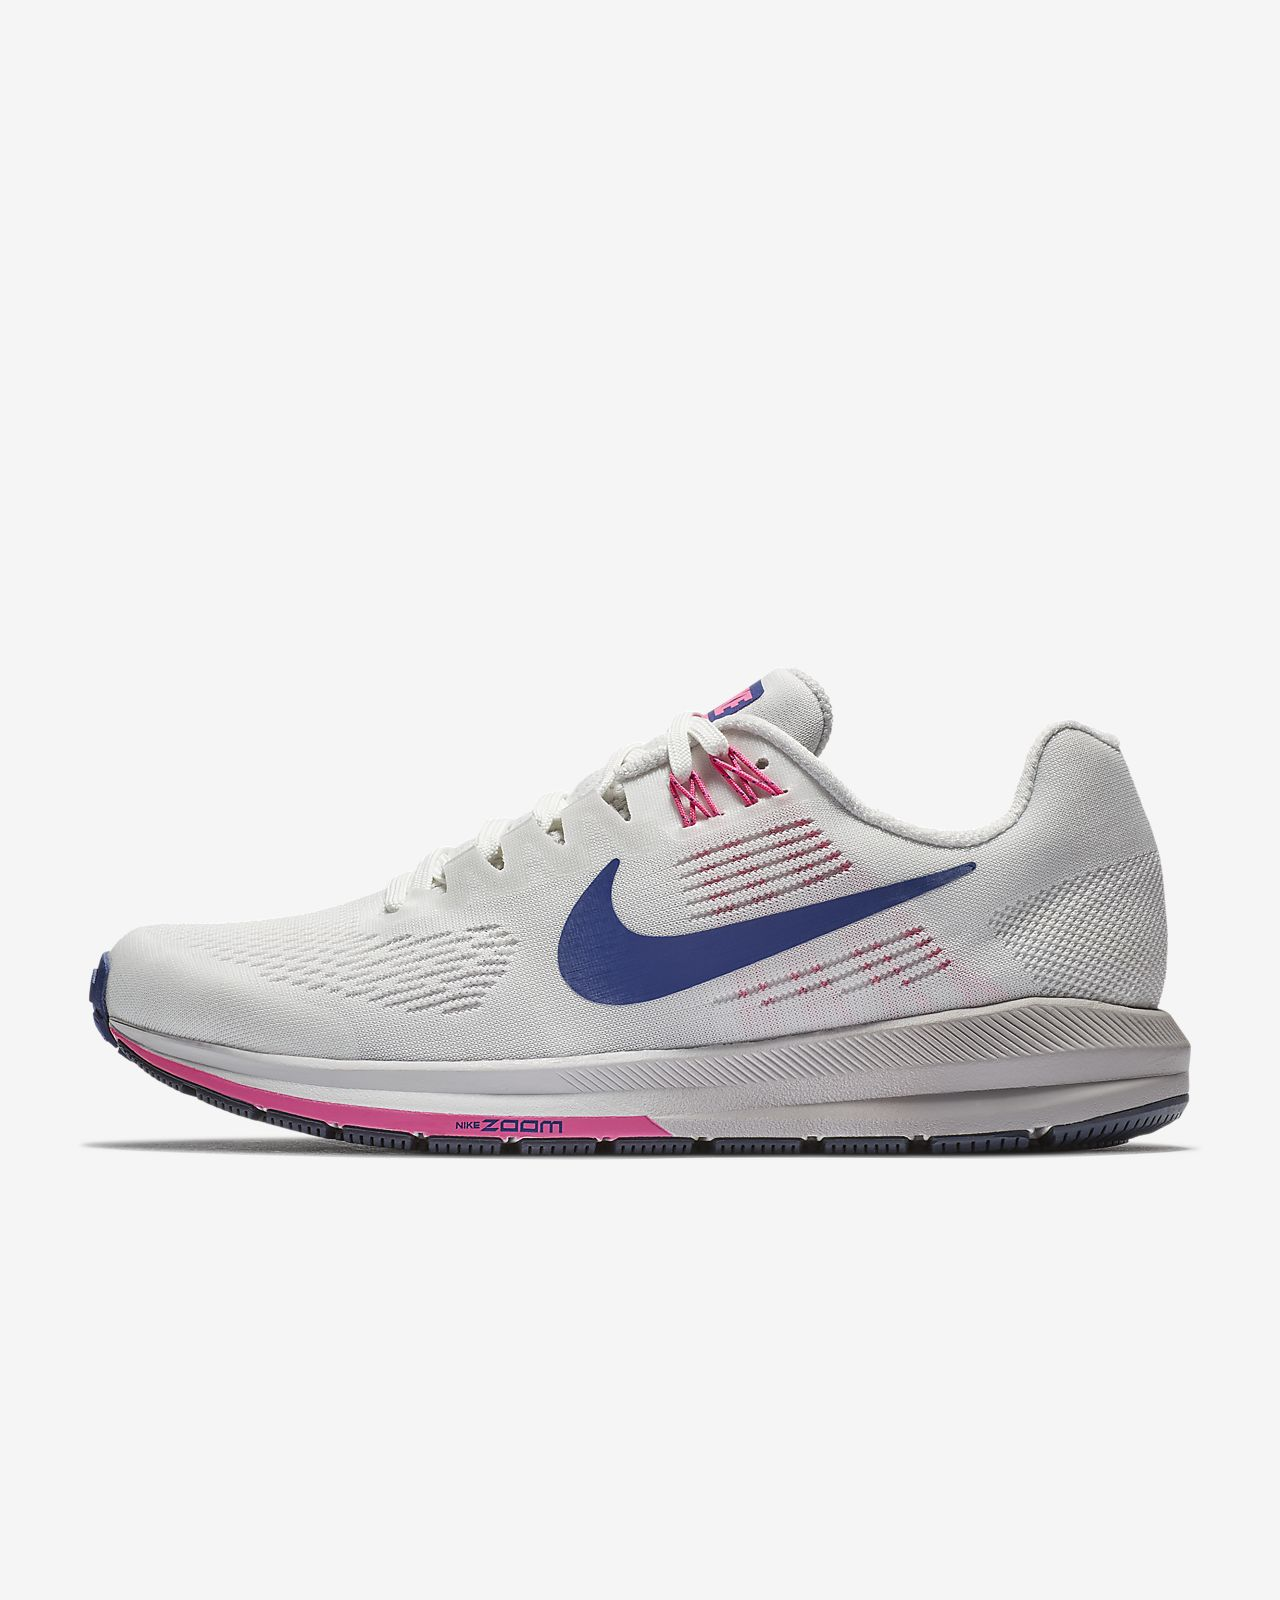 rosado blanco Nike air zoom structure a8a7f 35 tough and durable a8a7f structure 709893